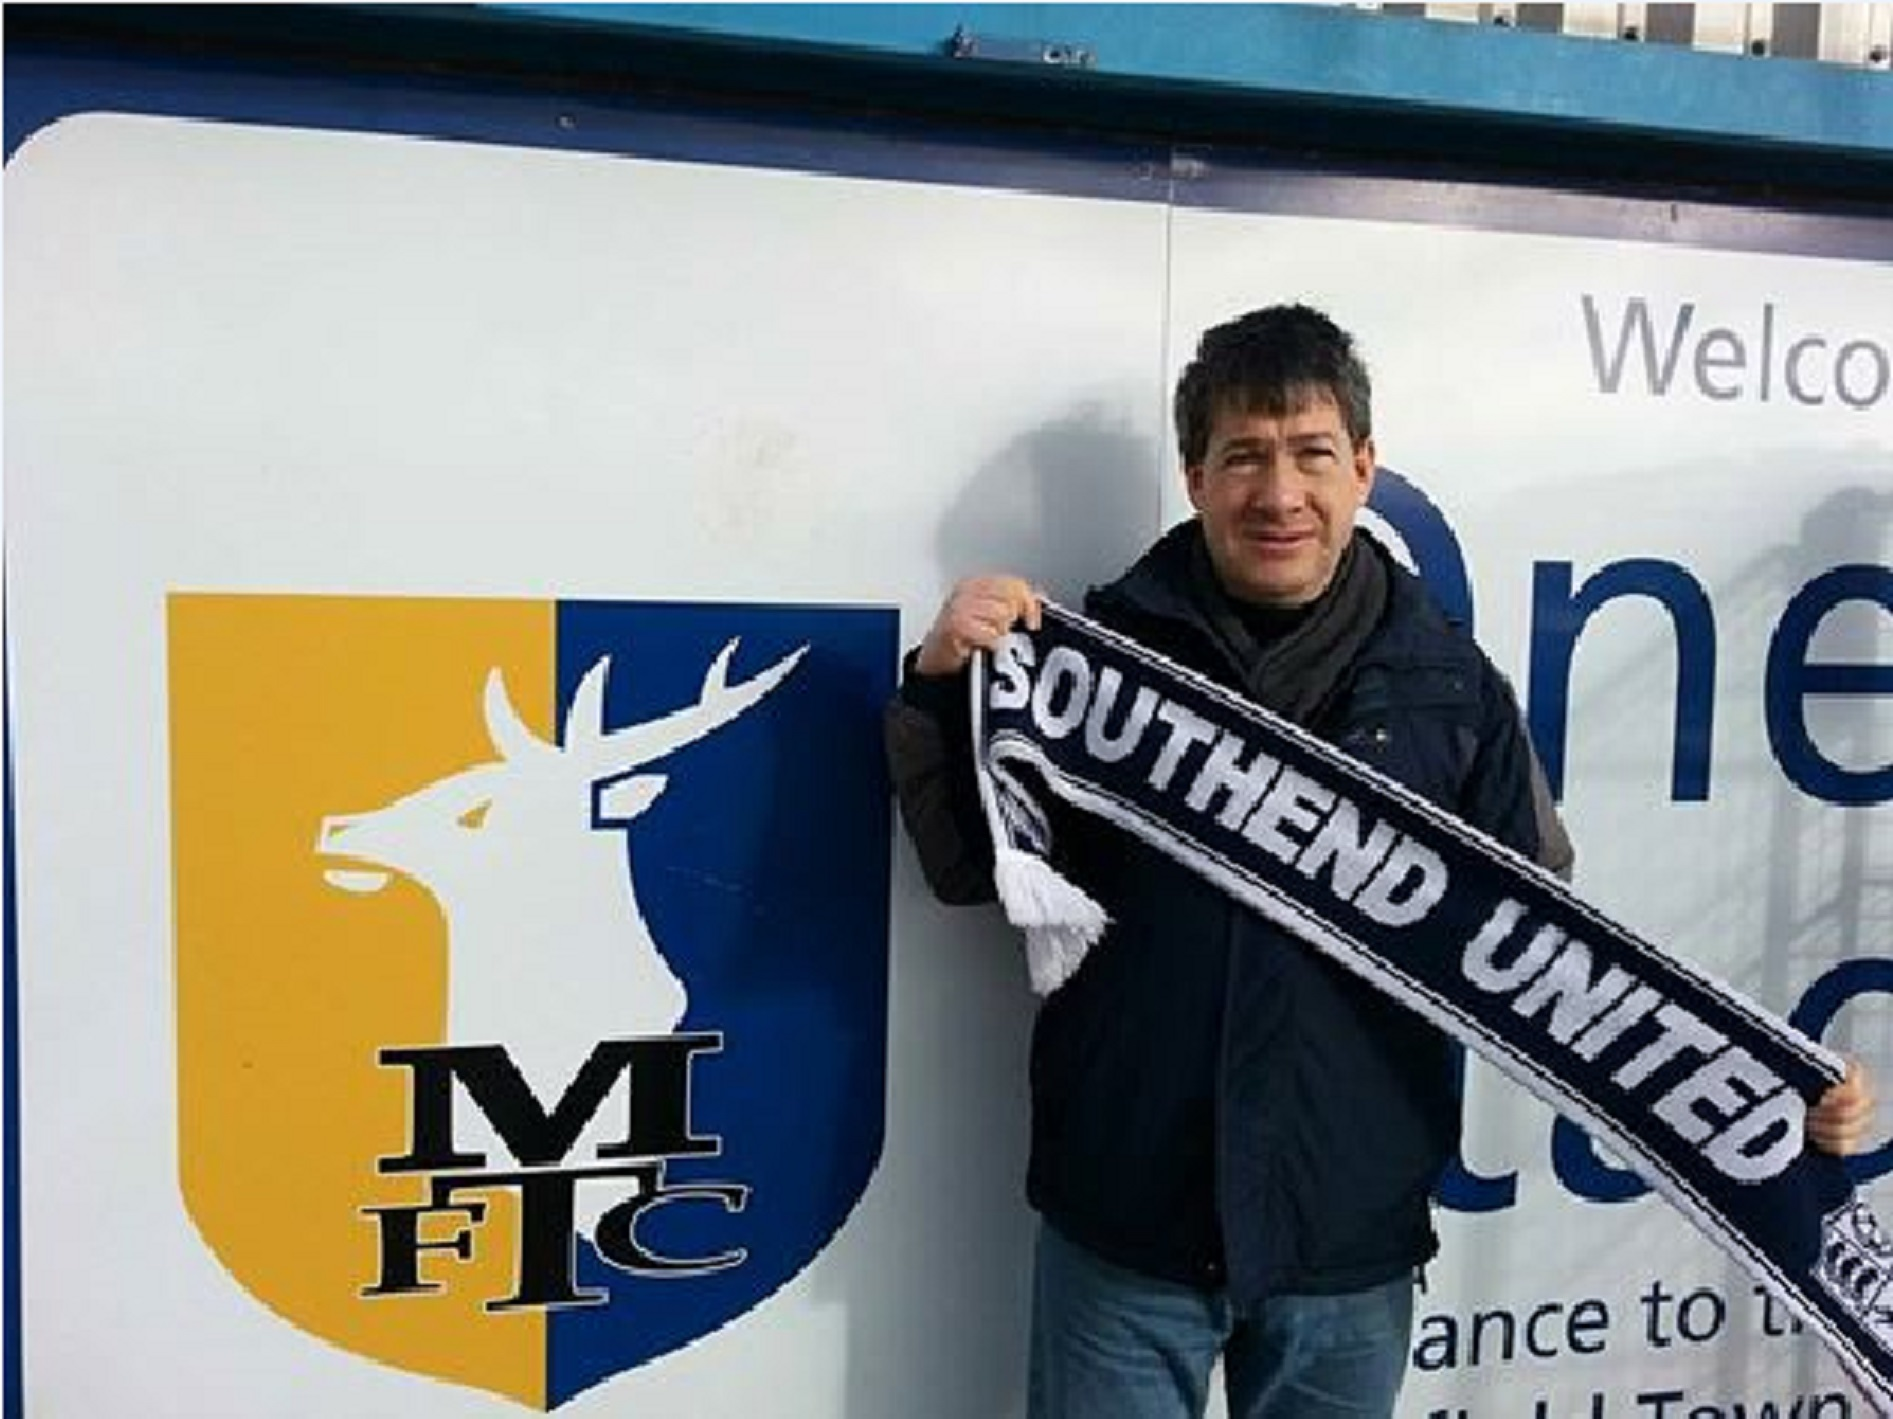 All wrapped up — Phil Cox racked up his 1,300th consecutive Southend United game when he watched Blues play Mansfield Town at Field Mill on Saturday